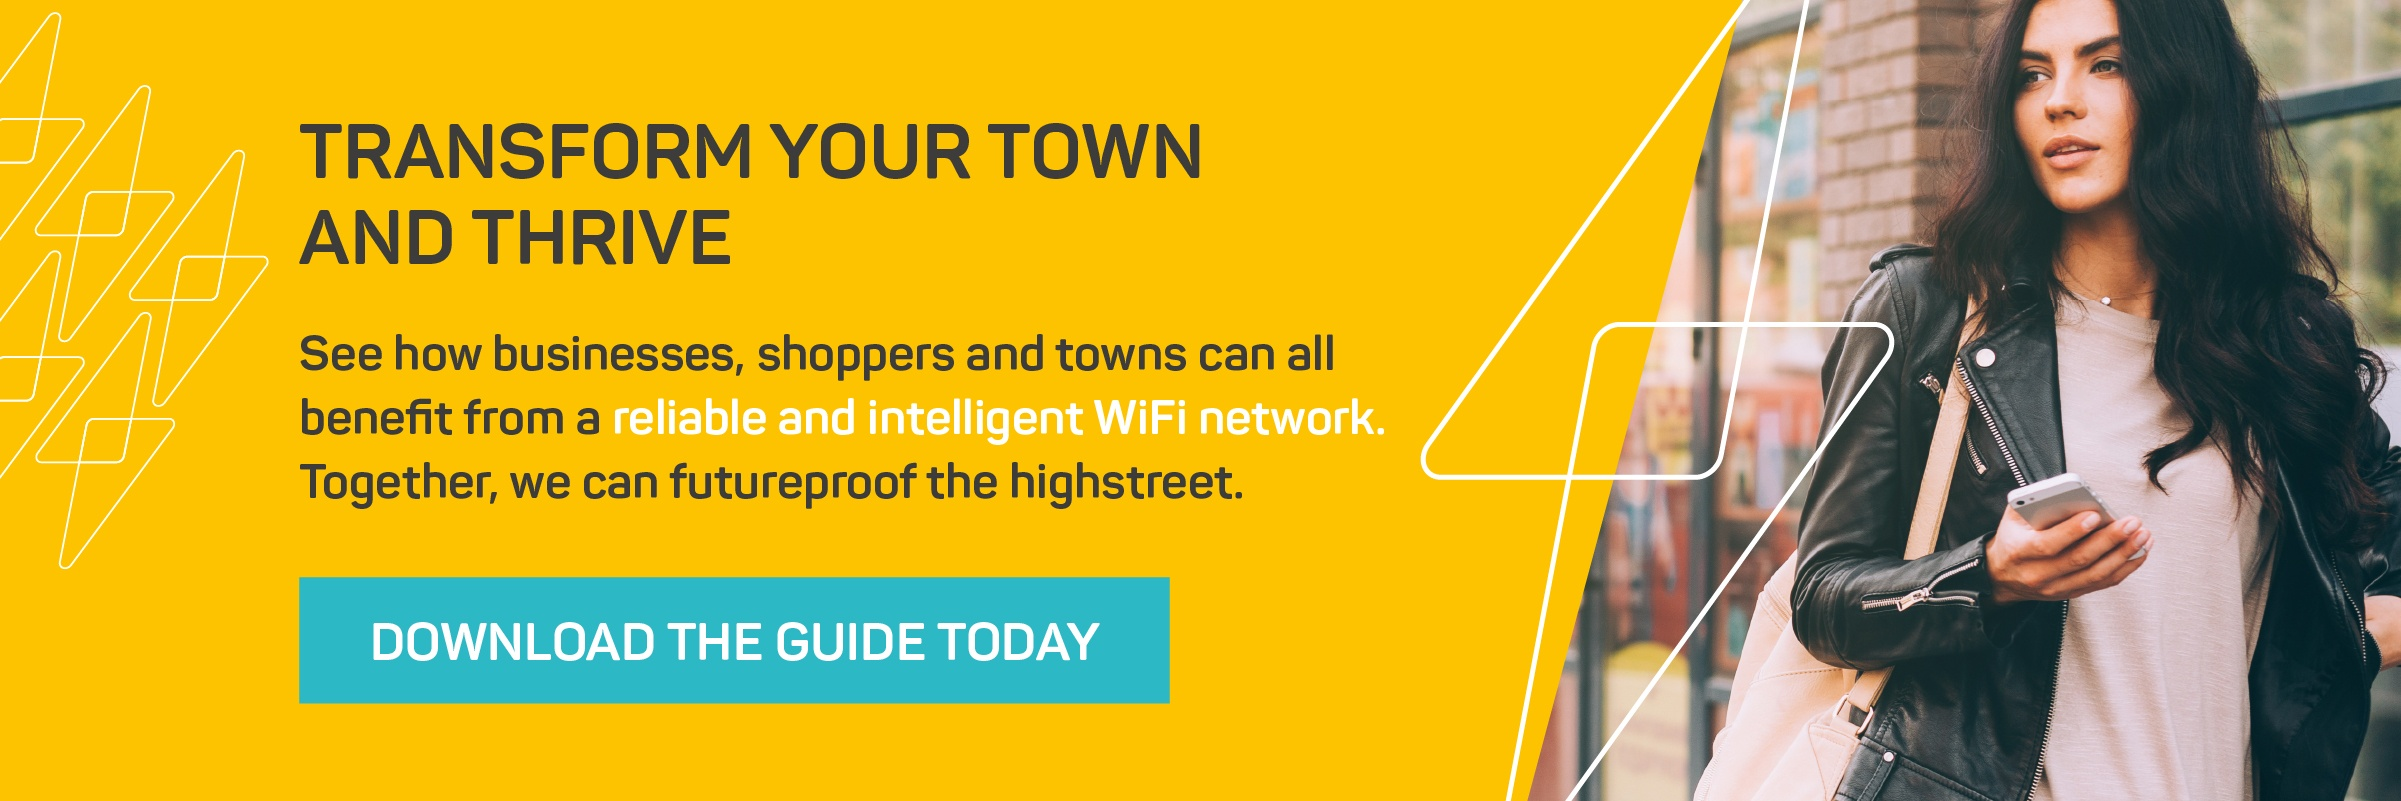 BID to Transform your Town with the Power of WiFi